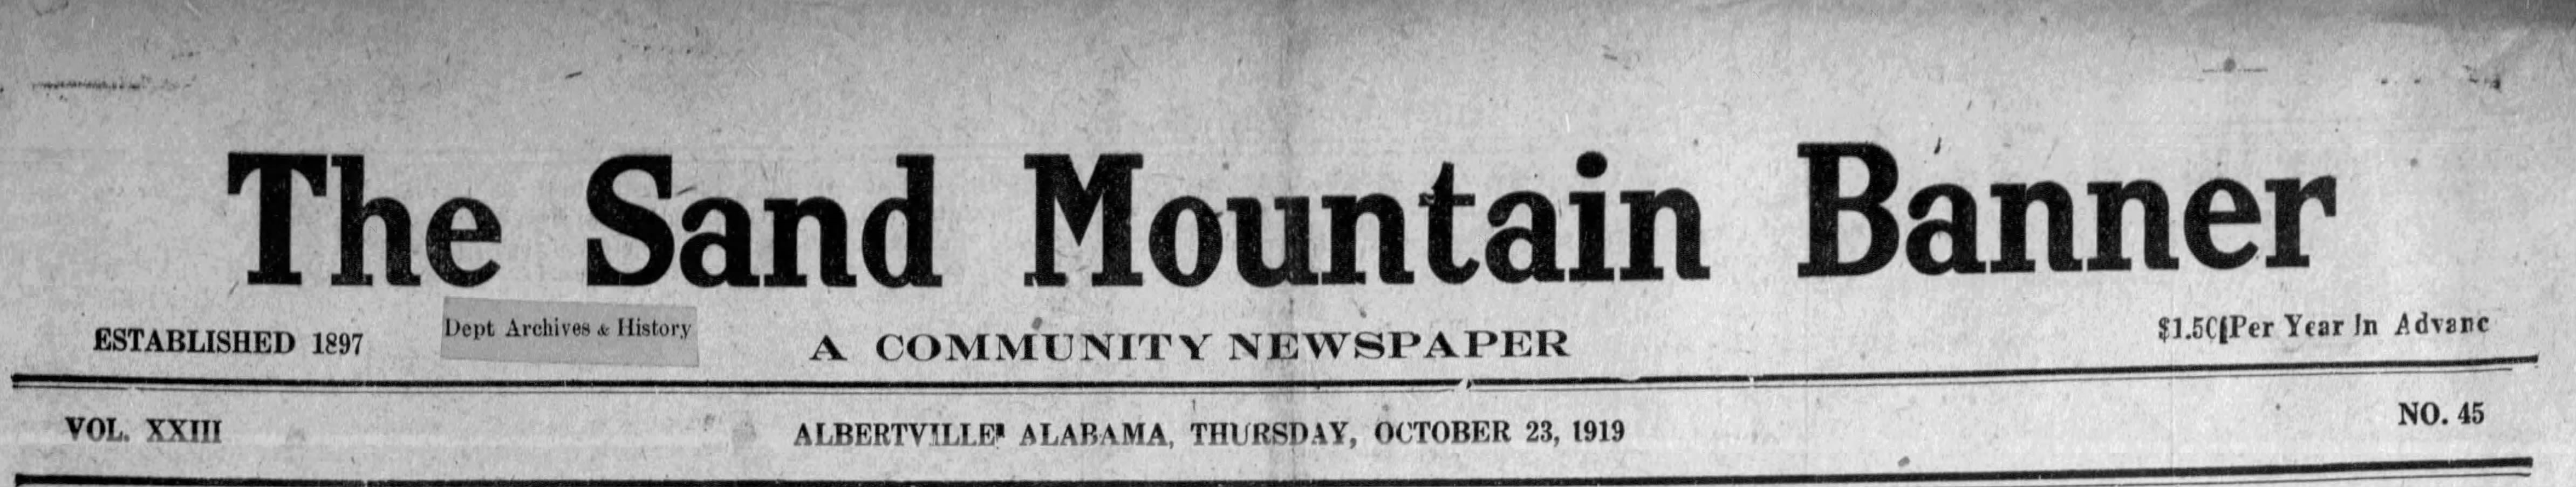 Patron - Is your Albertville, Alabama ancestor mentioned in this newspaper from October 23, 1919